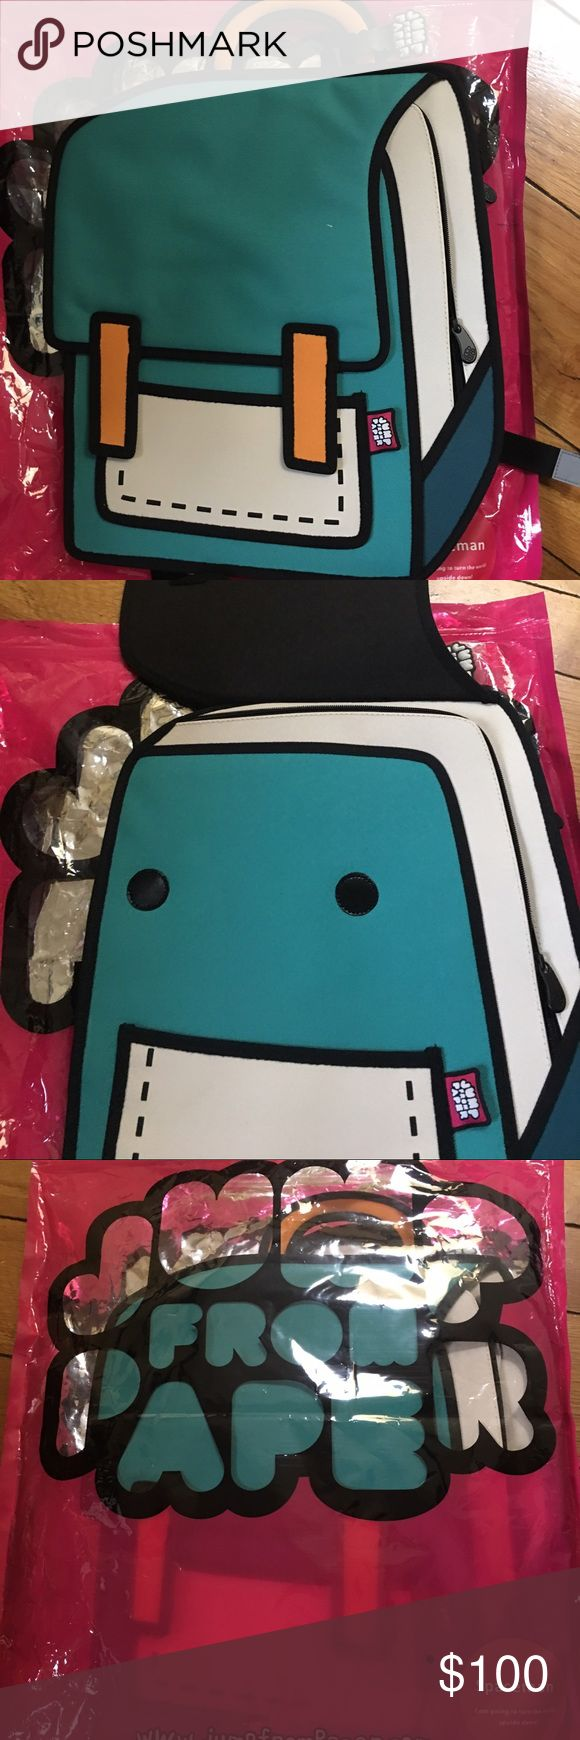 Jump from paper - spacebag brand new Jump from paper- spacebag turquoise backpack brand new in bag jump from paper Bags Backpacks